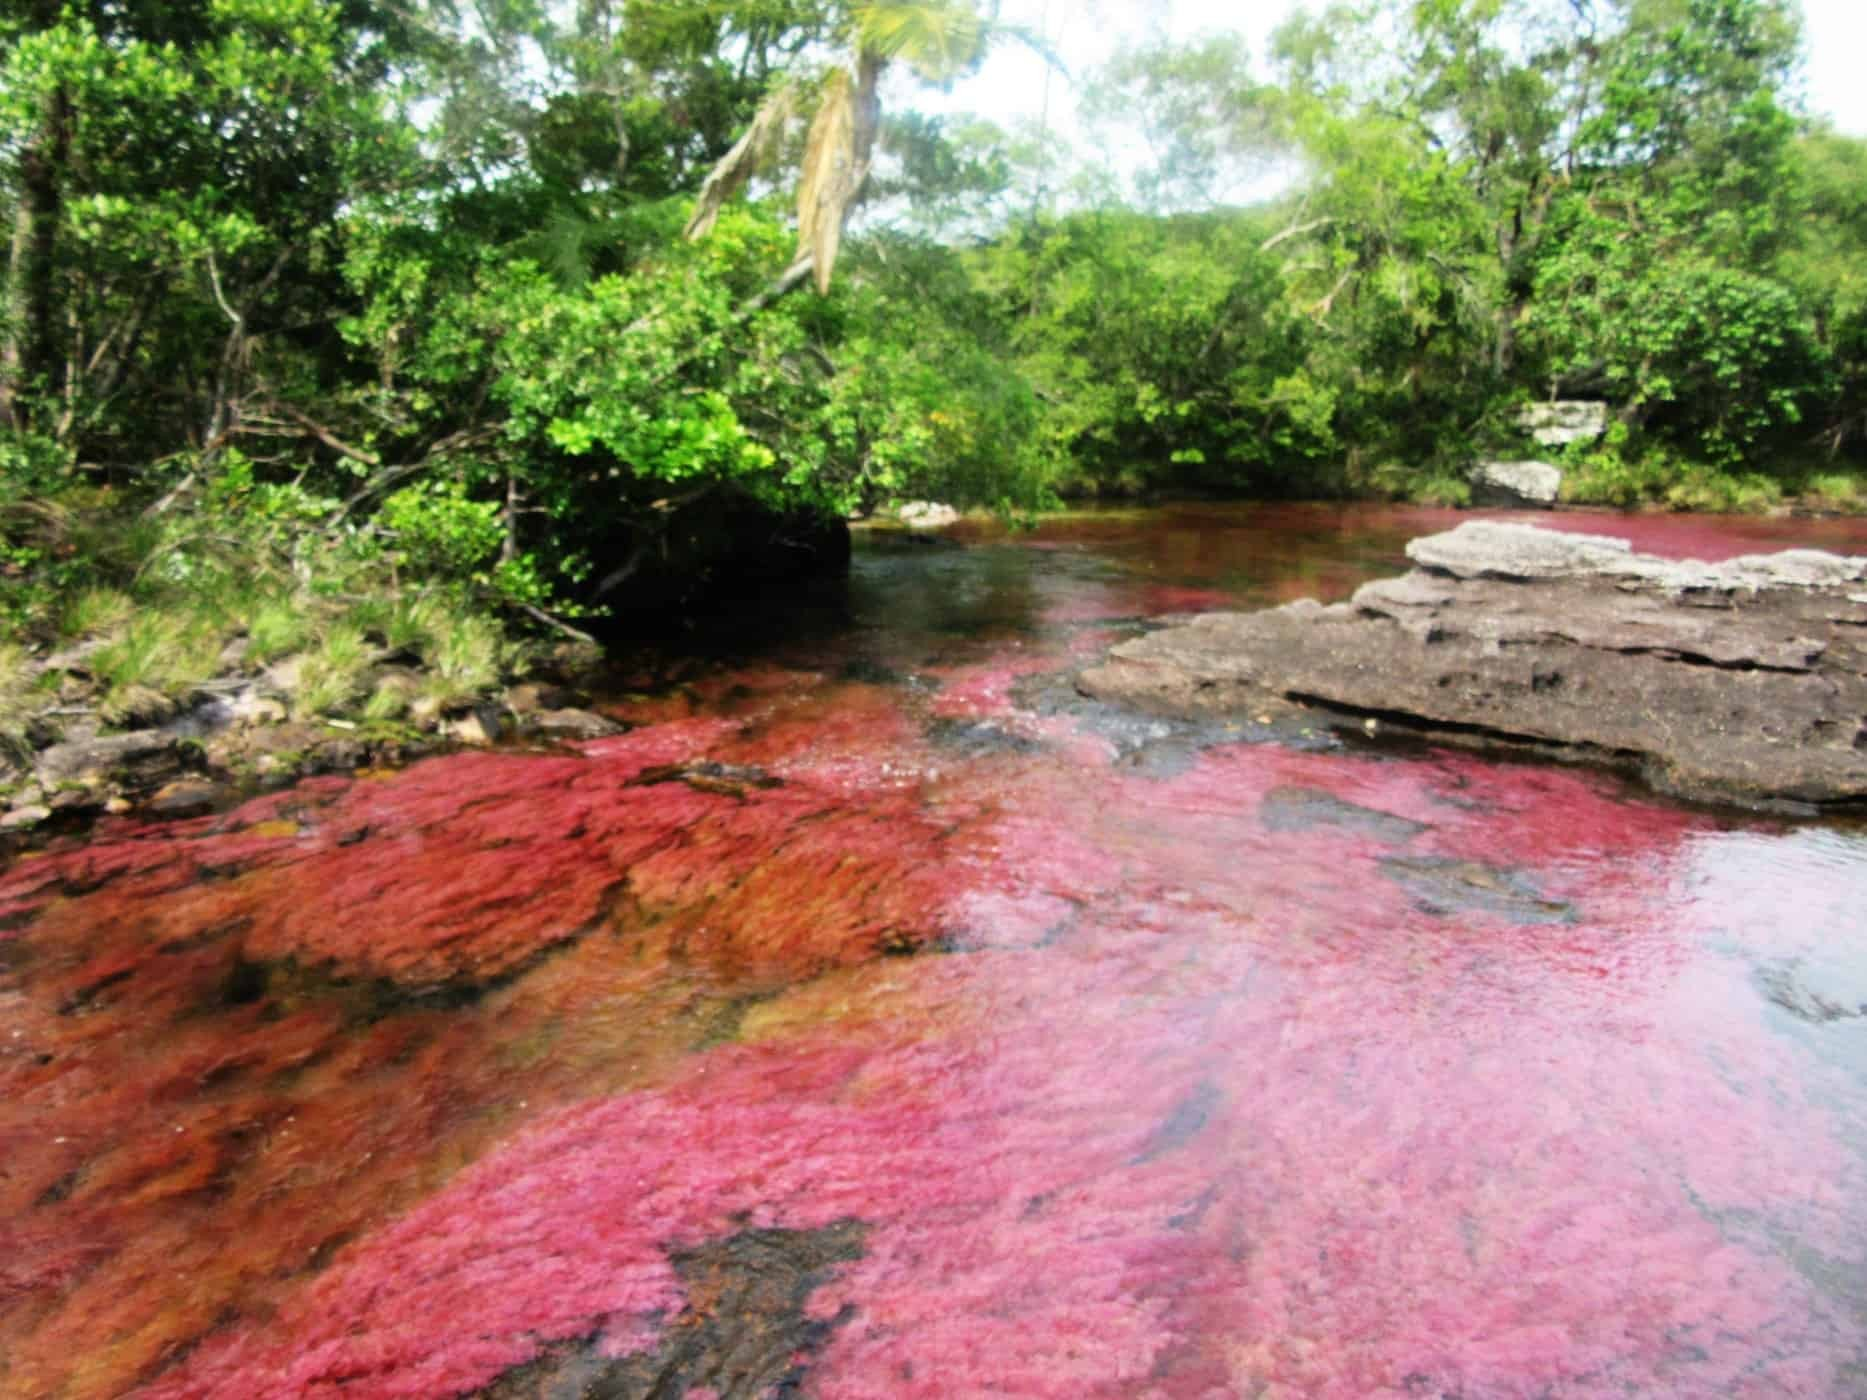 Experience amazing nature during your visit to Caño Cristales!